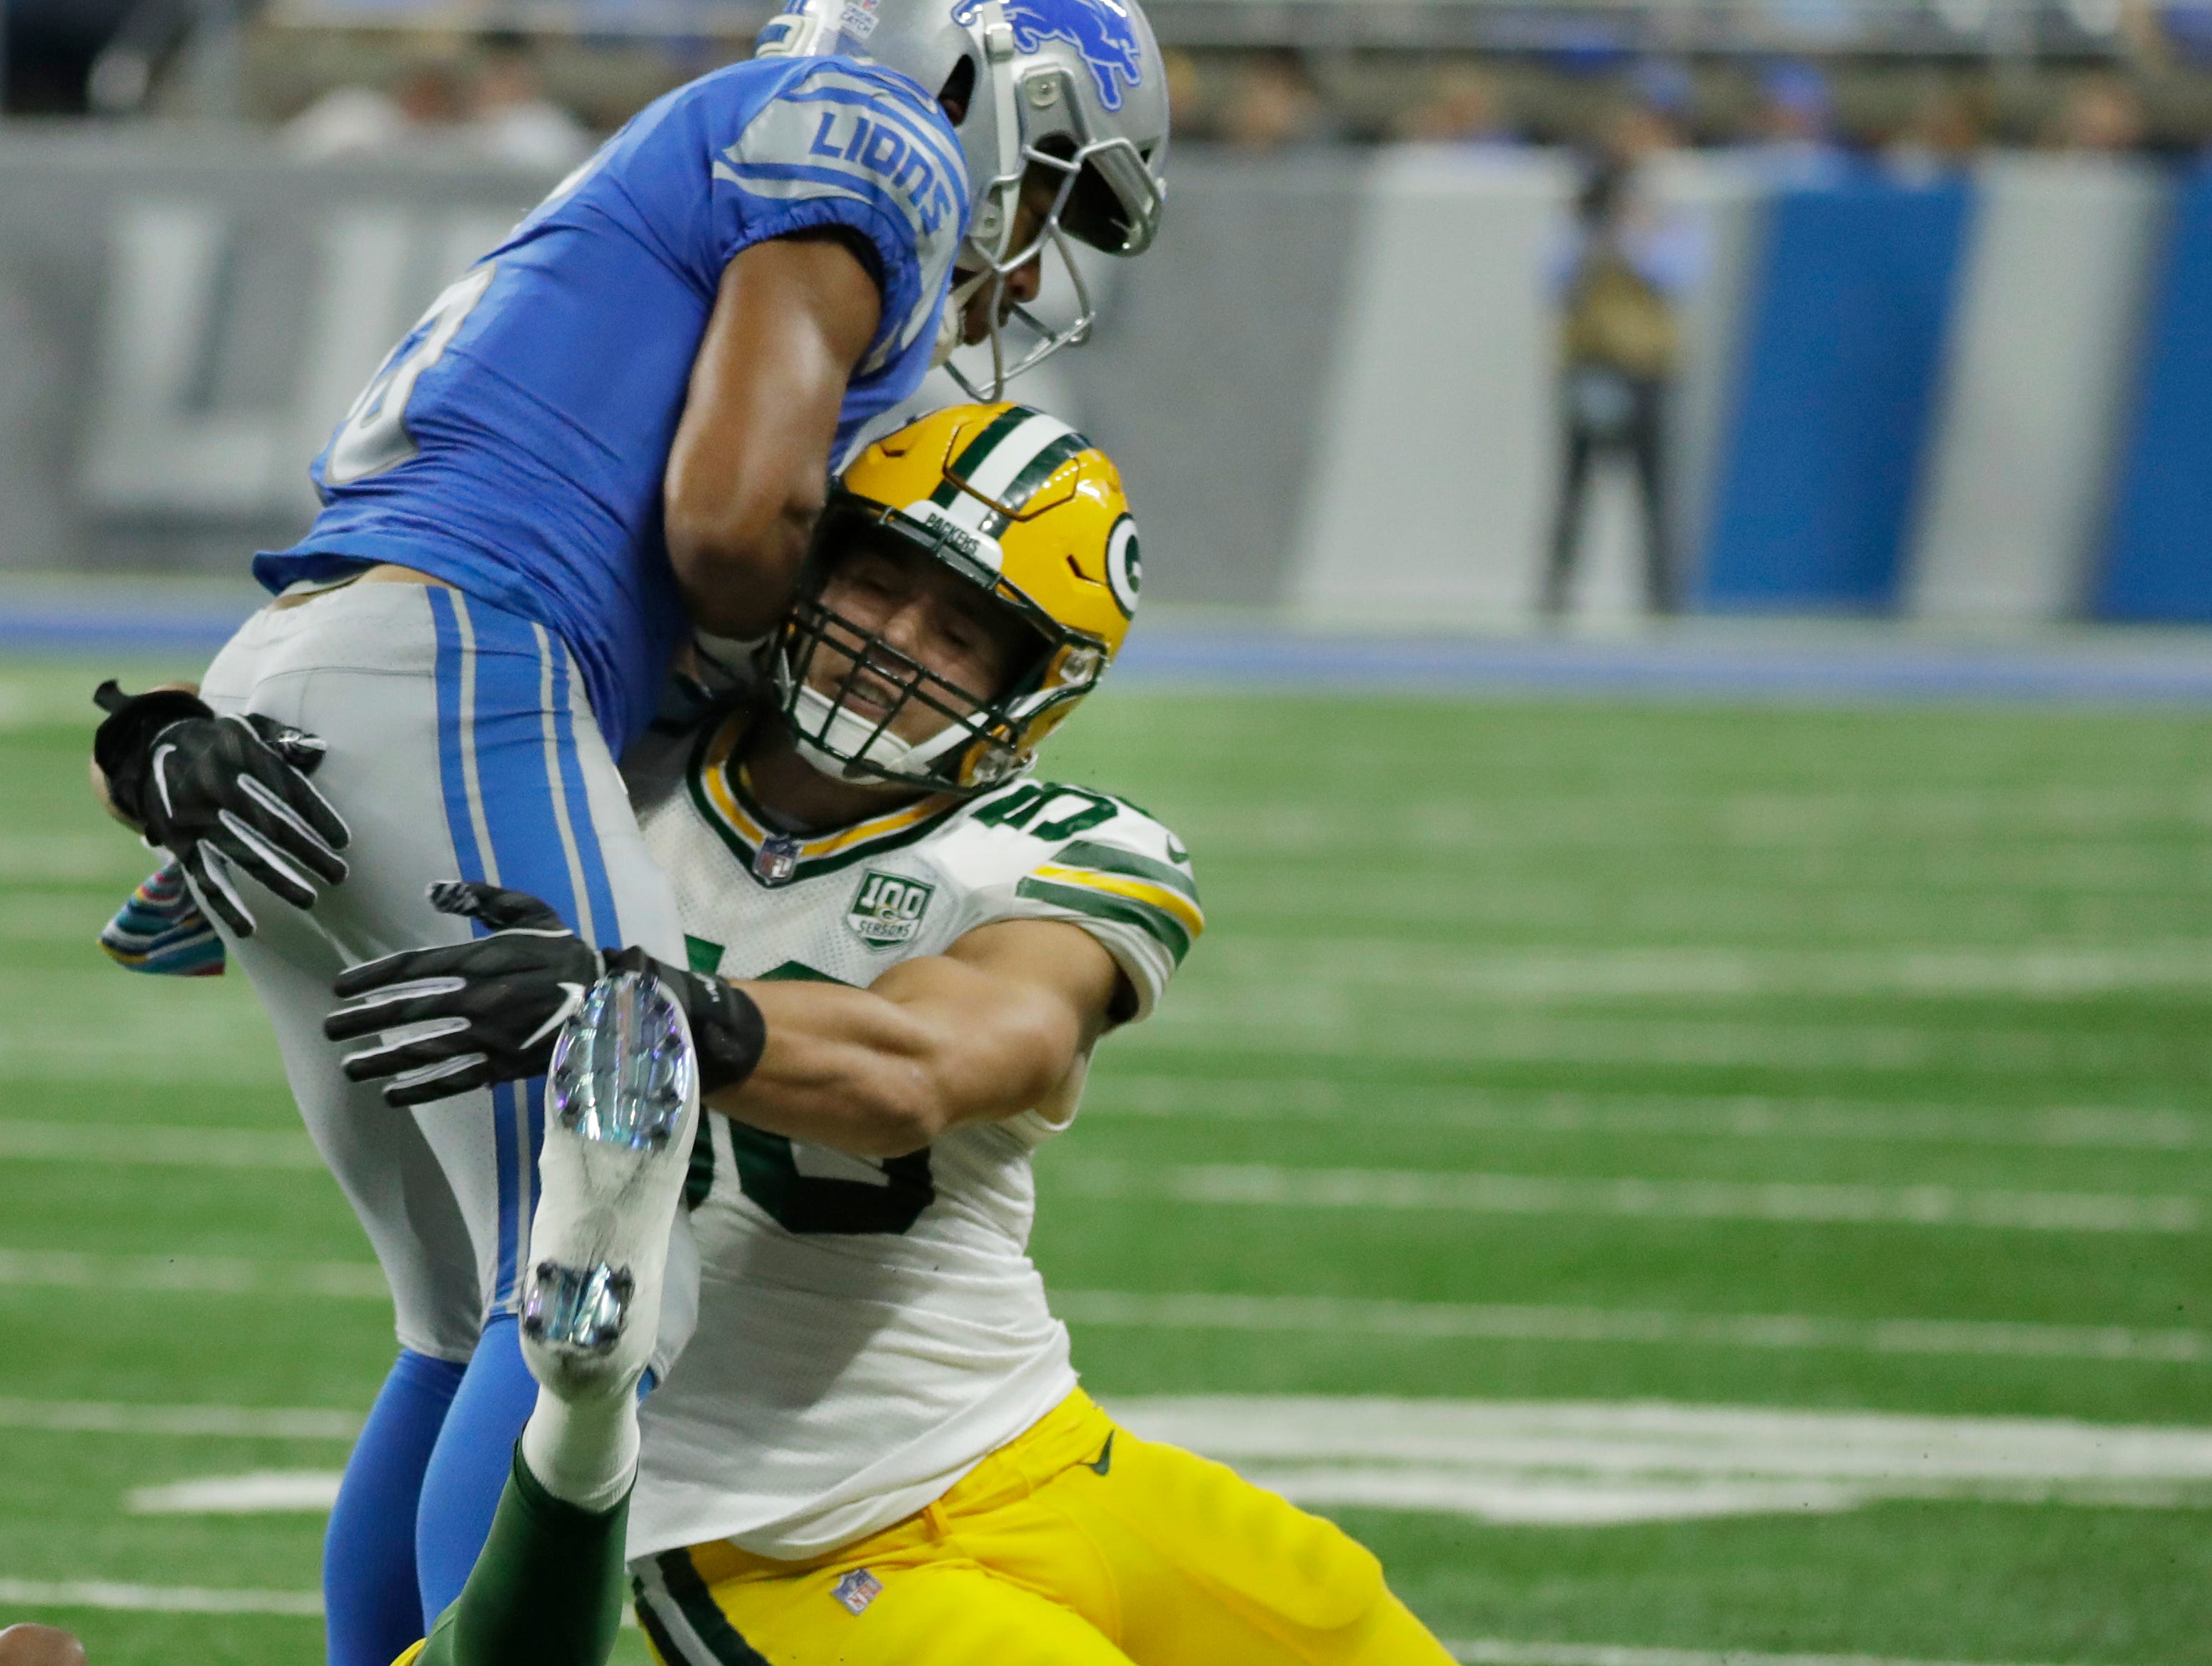 Green Bay Packers linebacker Blake Martinez (50) tackles Detroit Lions wide receiver Golden Tate (15) during the Green Bay Packers 31-23 loss to the Detroit Lions at Ford Field, Detroit, Sunday, October 7, 2018.   Rick Wood/Milwaukee Journal Sentinel. USA